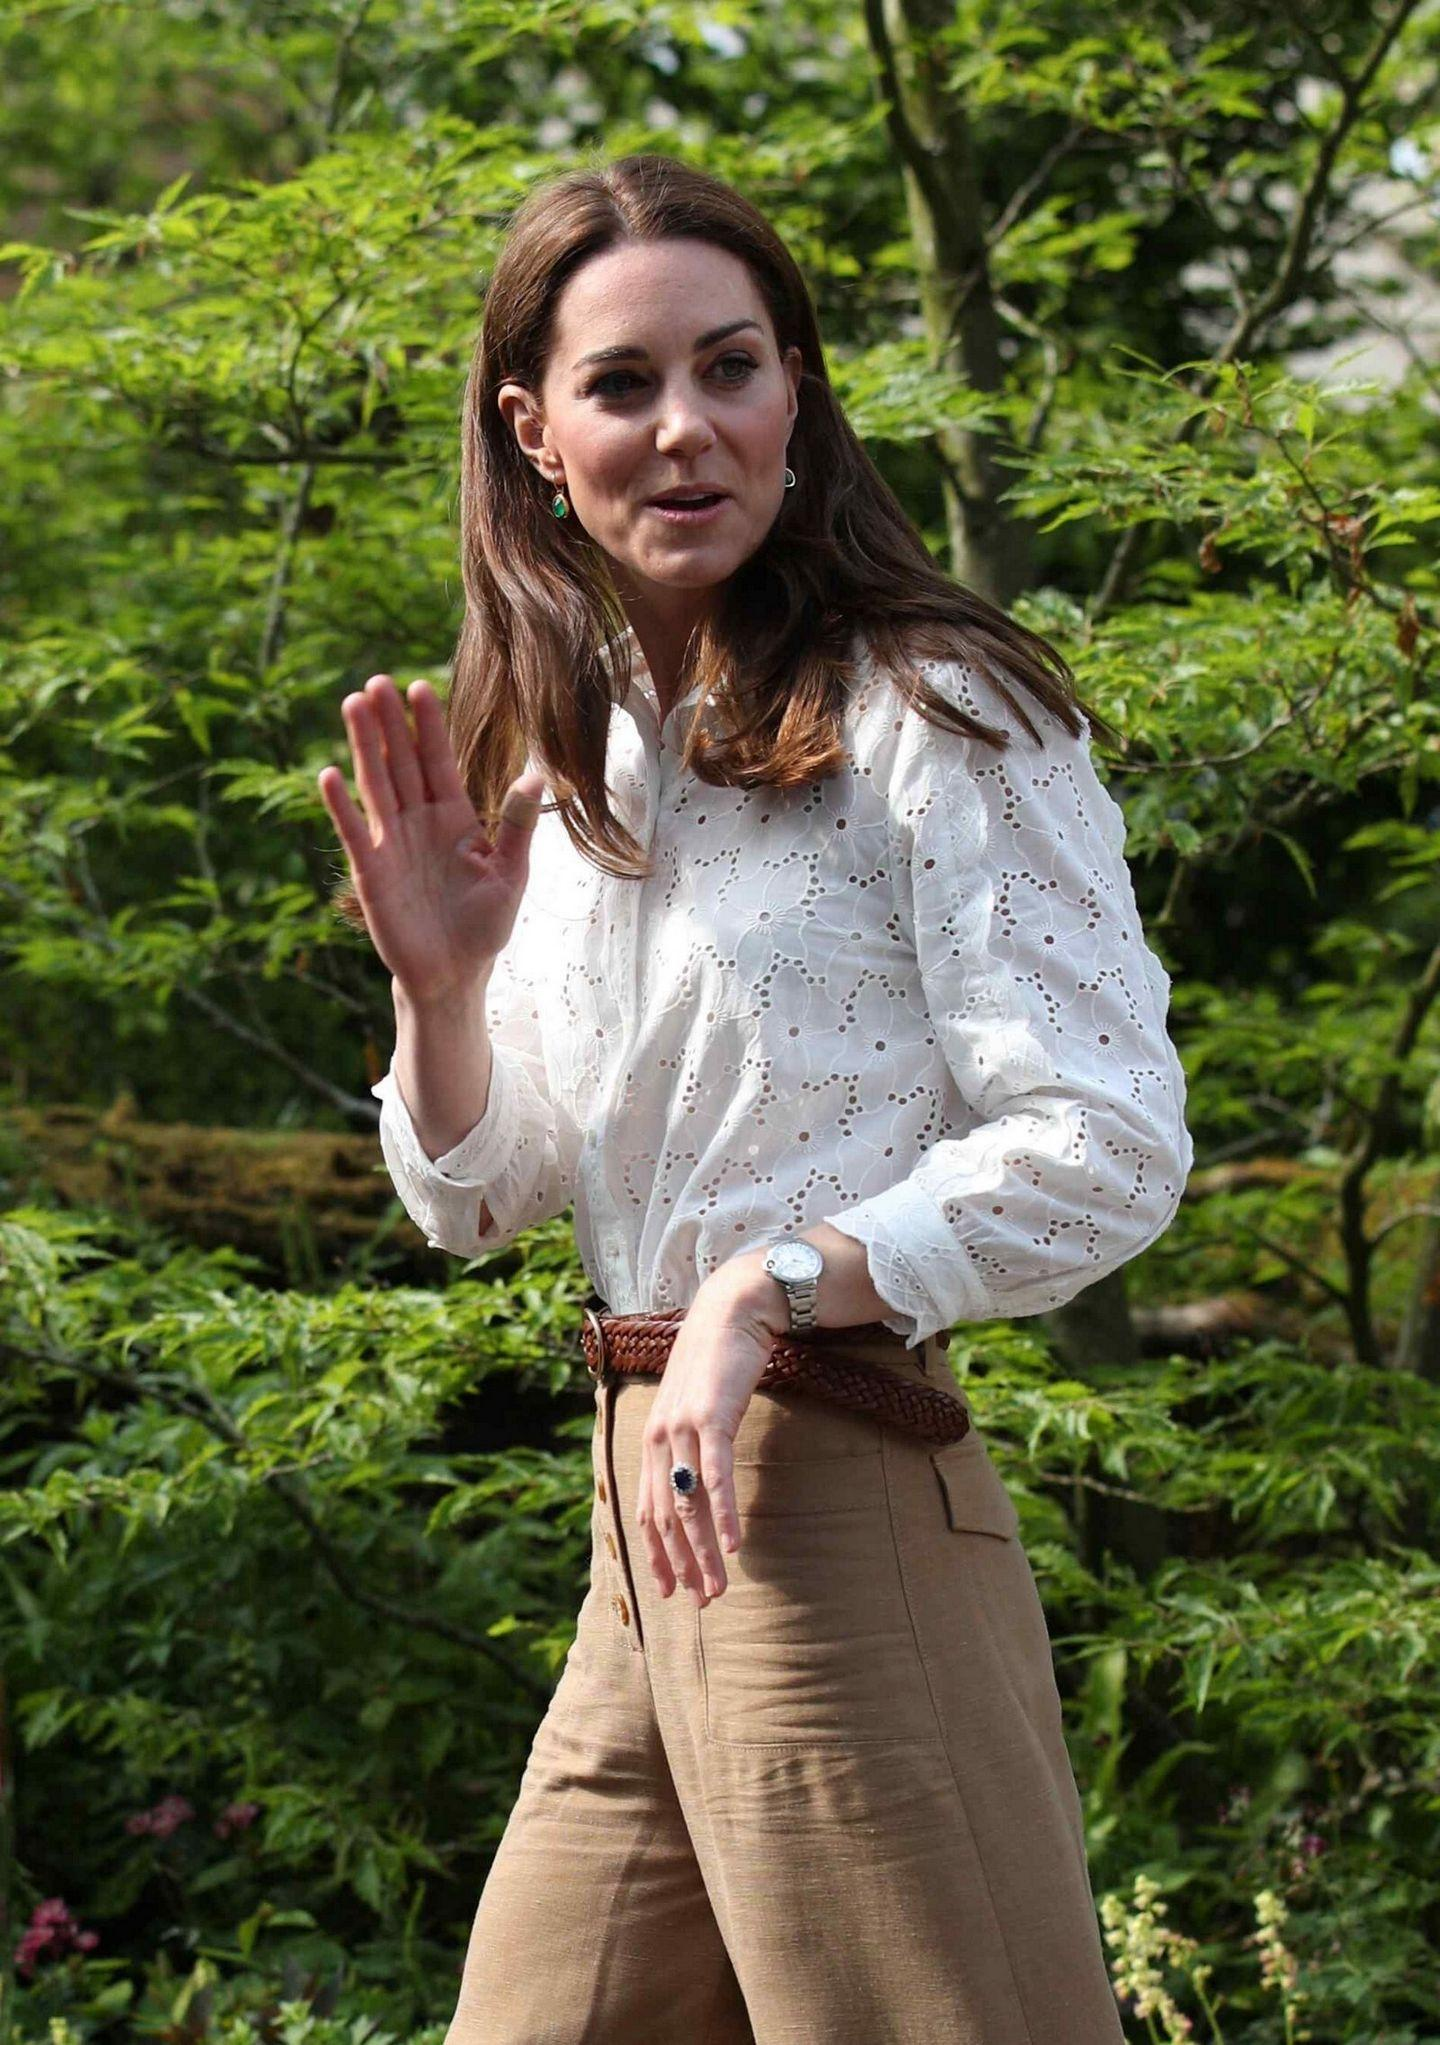 Kate Middleton at Royal Hospital Chelsea Flower Show in London